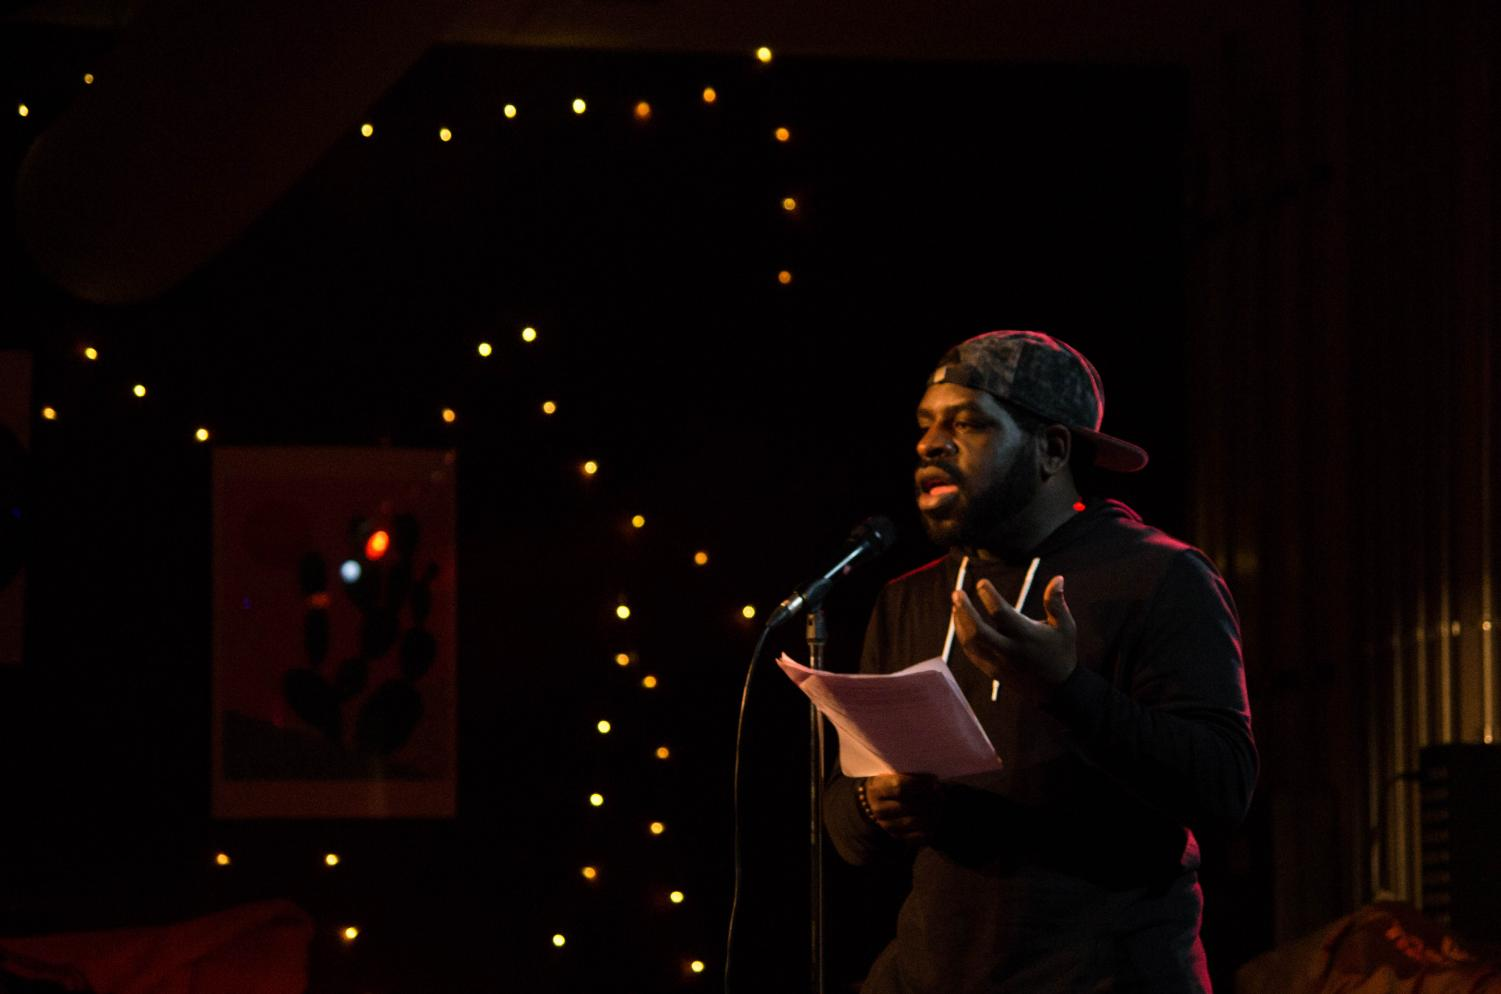 Slam poet Hanif Willis-Abdurraqib performed a selection of witty, unusual, and energetic poems at the Cat in the Cream Monday night.